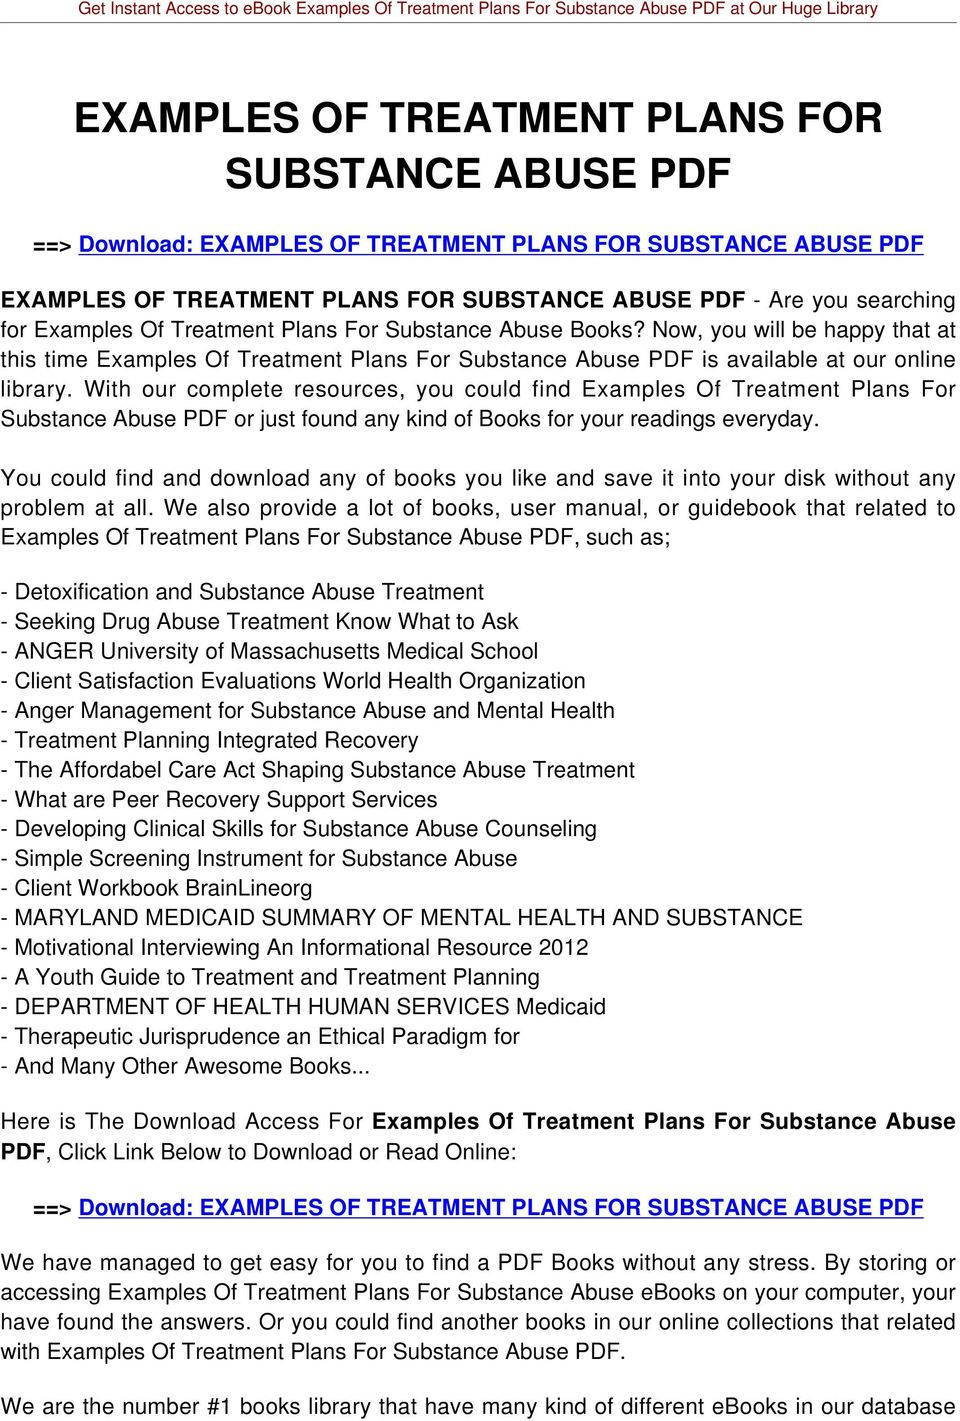 With our complete resources, you could find Examples Of Treatment Plans For Substance Abuse PDF or just found any kind of Books for your readings everyday.